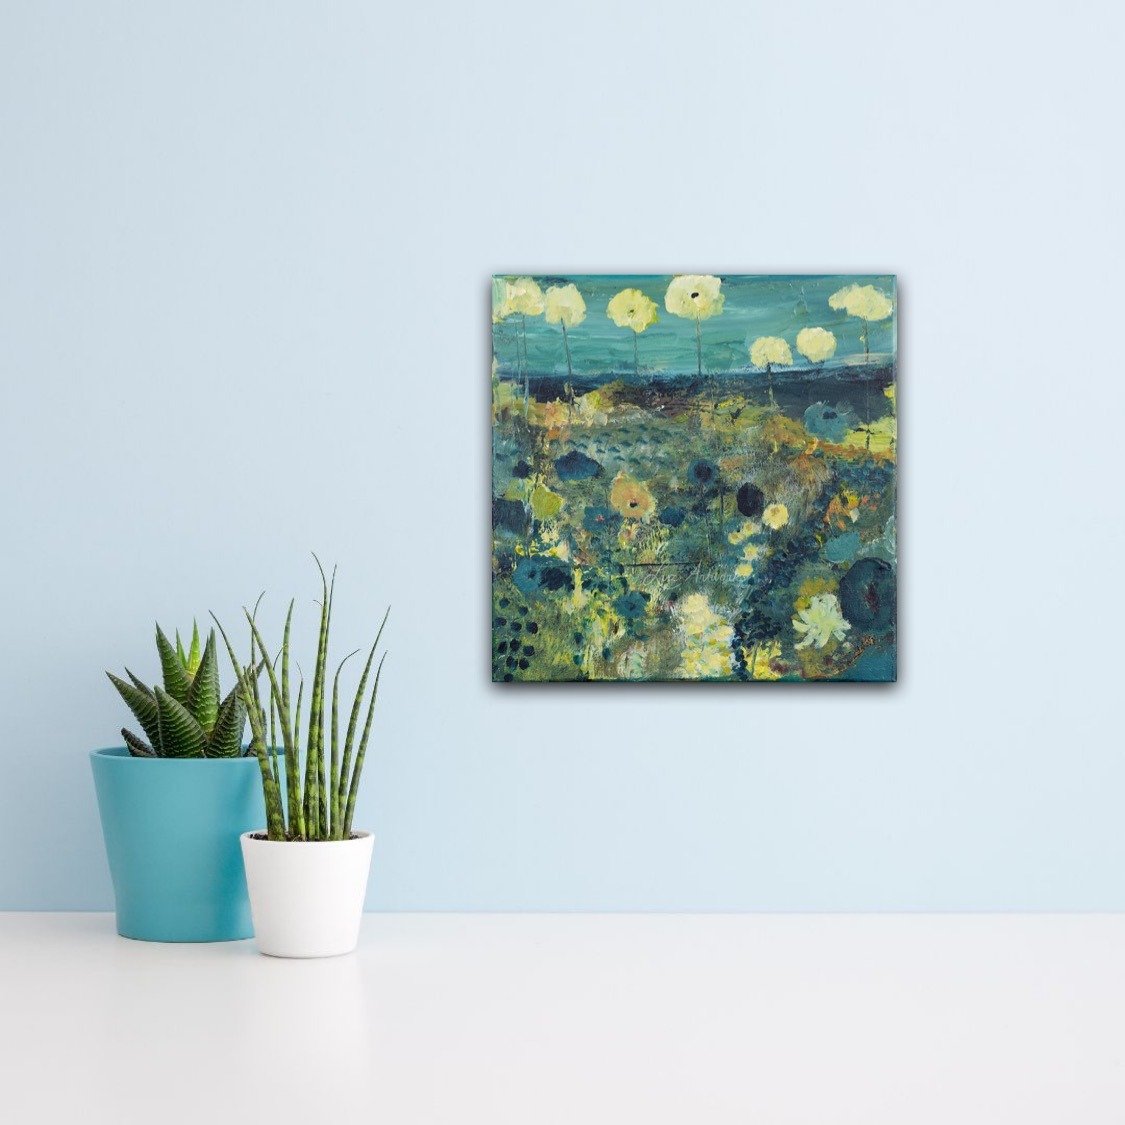 This image shows the painting Blue Spring Flowers by Luz / Marloes Bloedjes